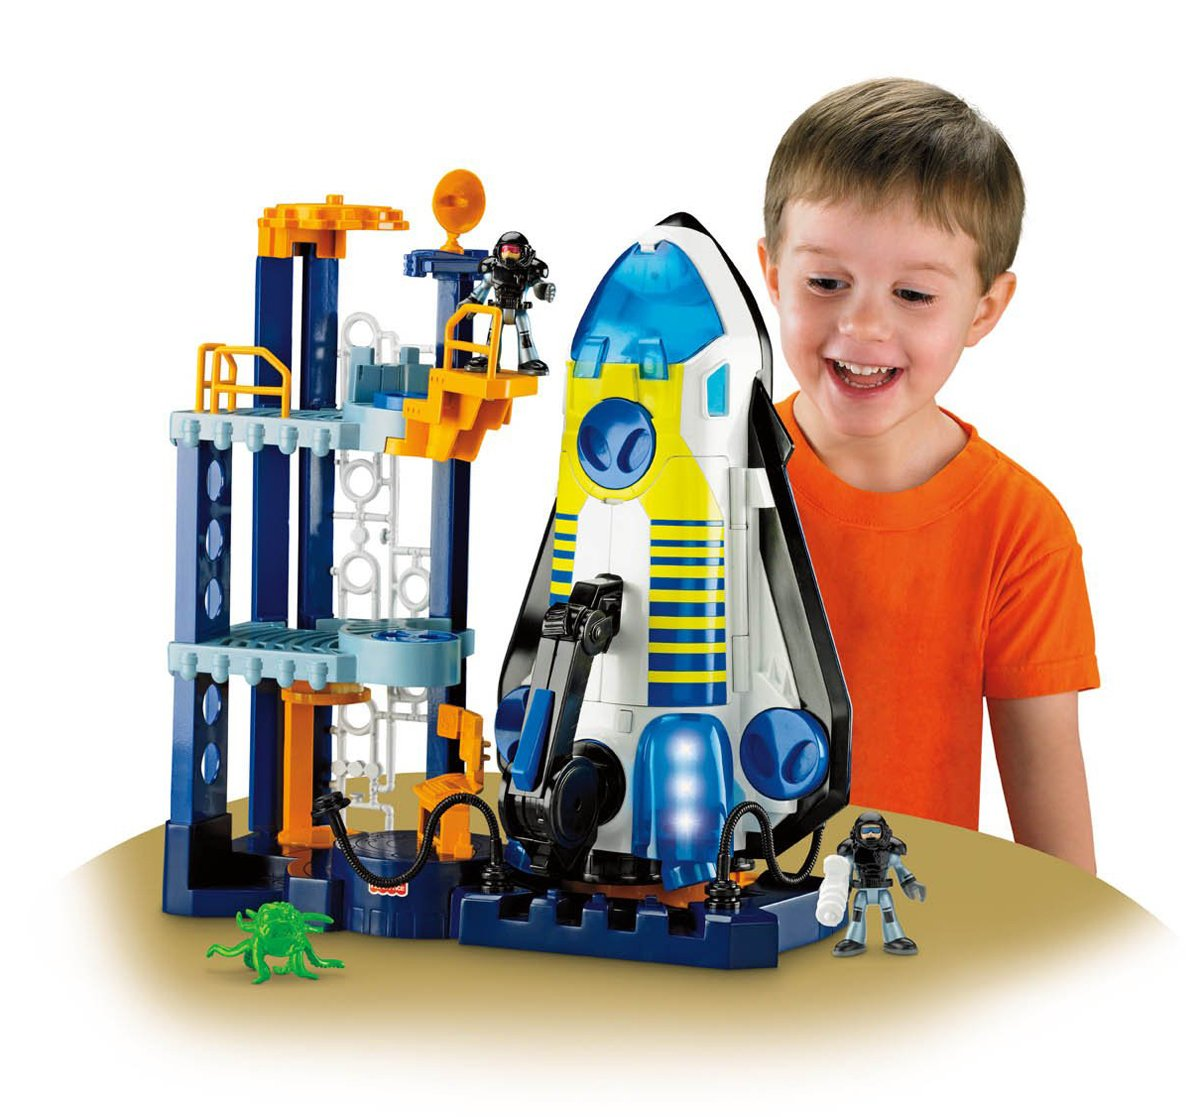 amazon com fisher price imaginext space shuttle and tower toys